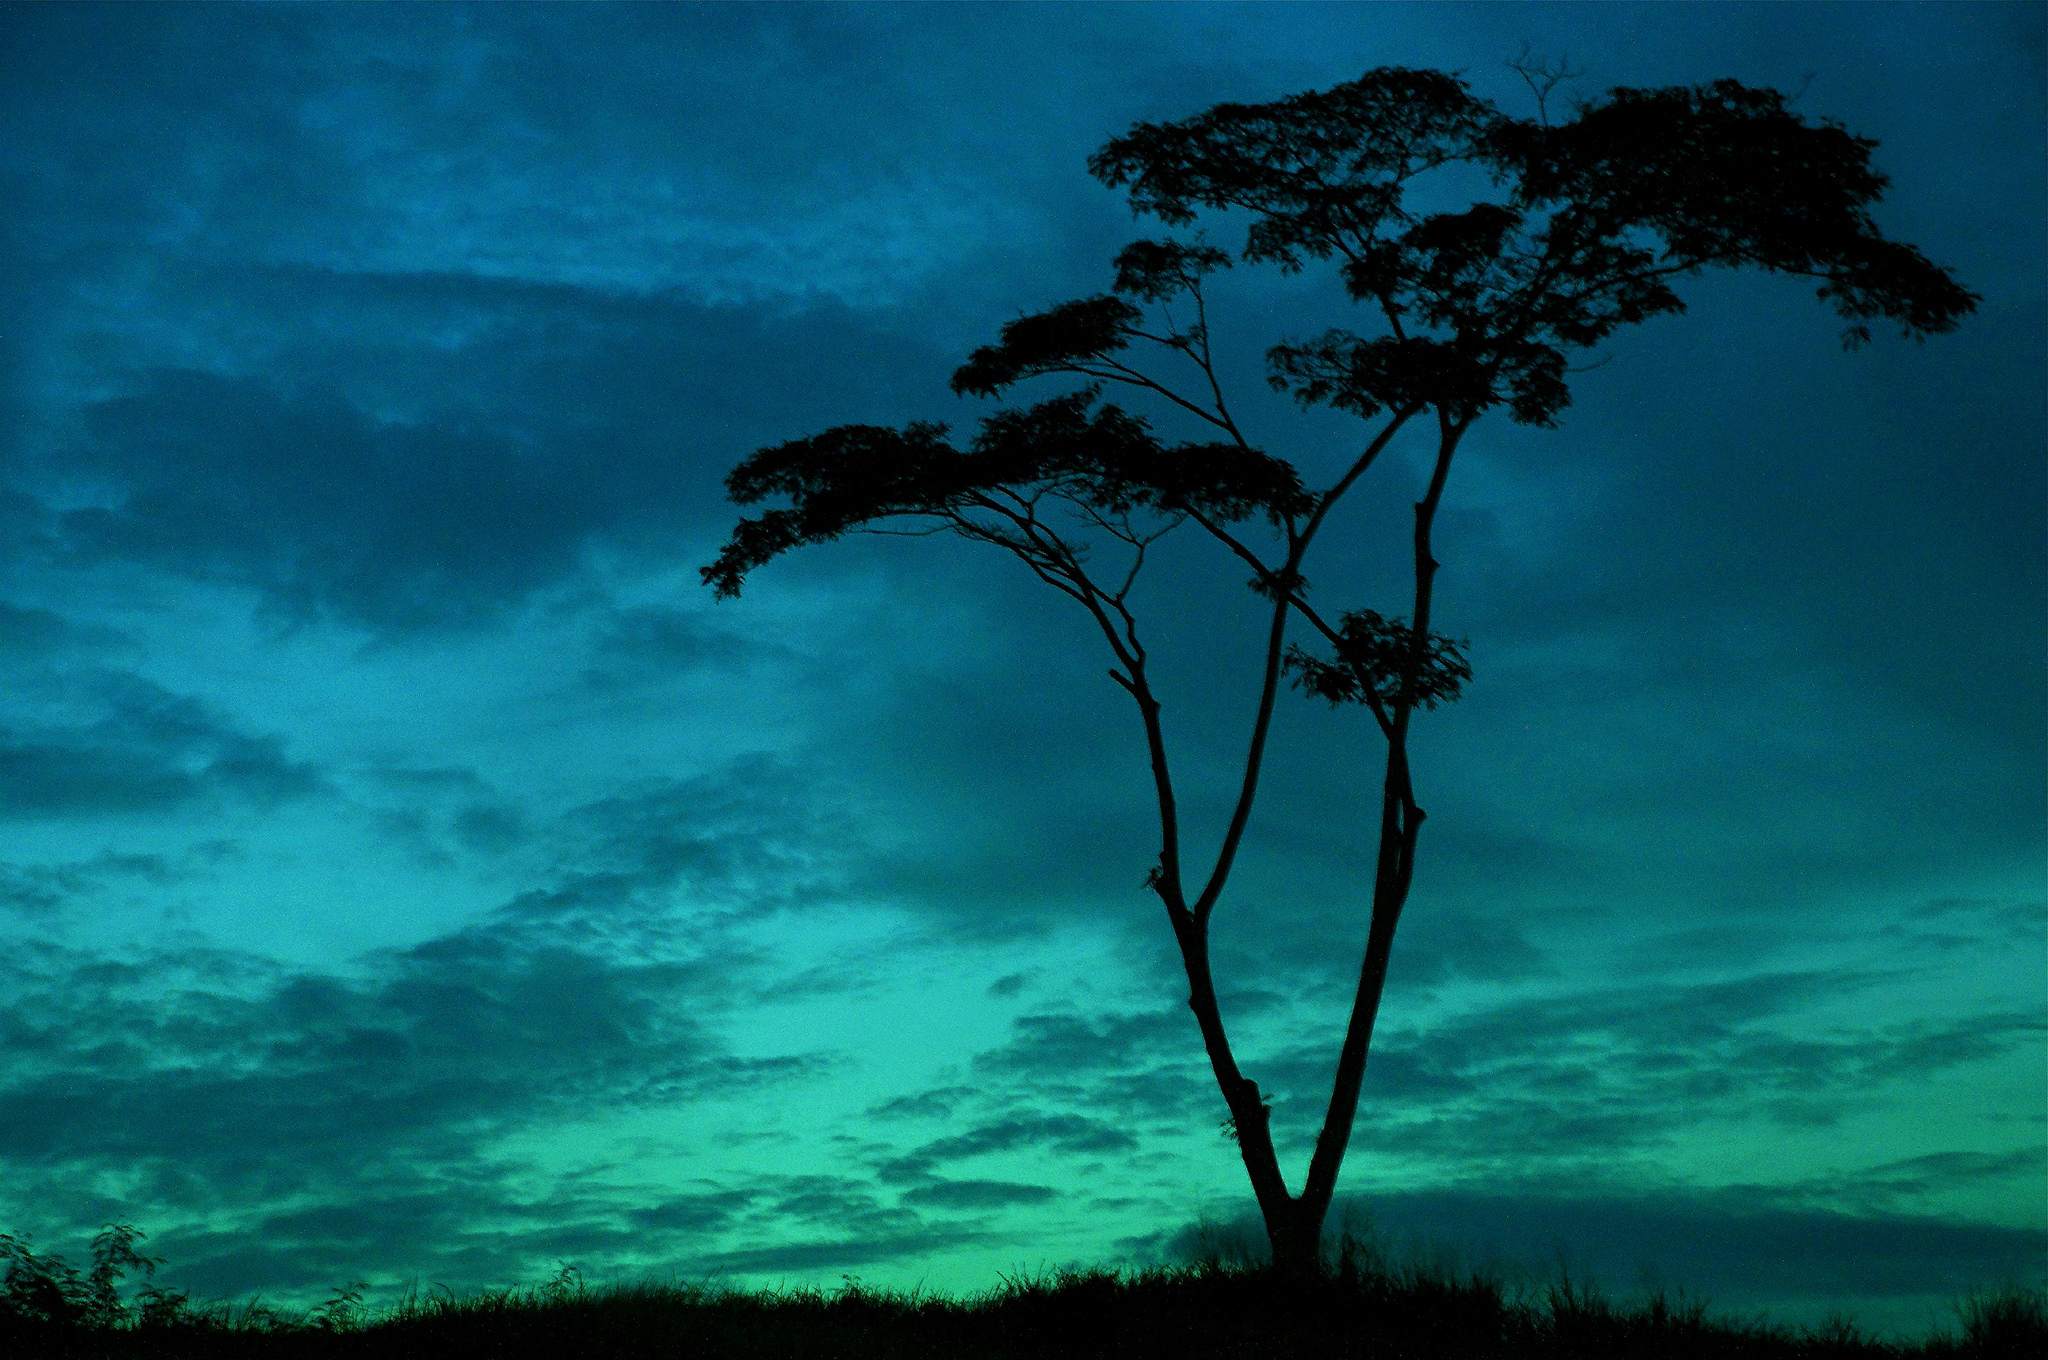 Tree Silhouette Against the Evening Sky – Photography Wallpapers